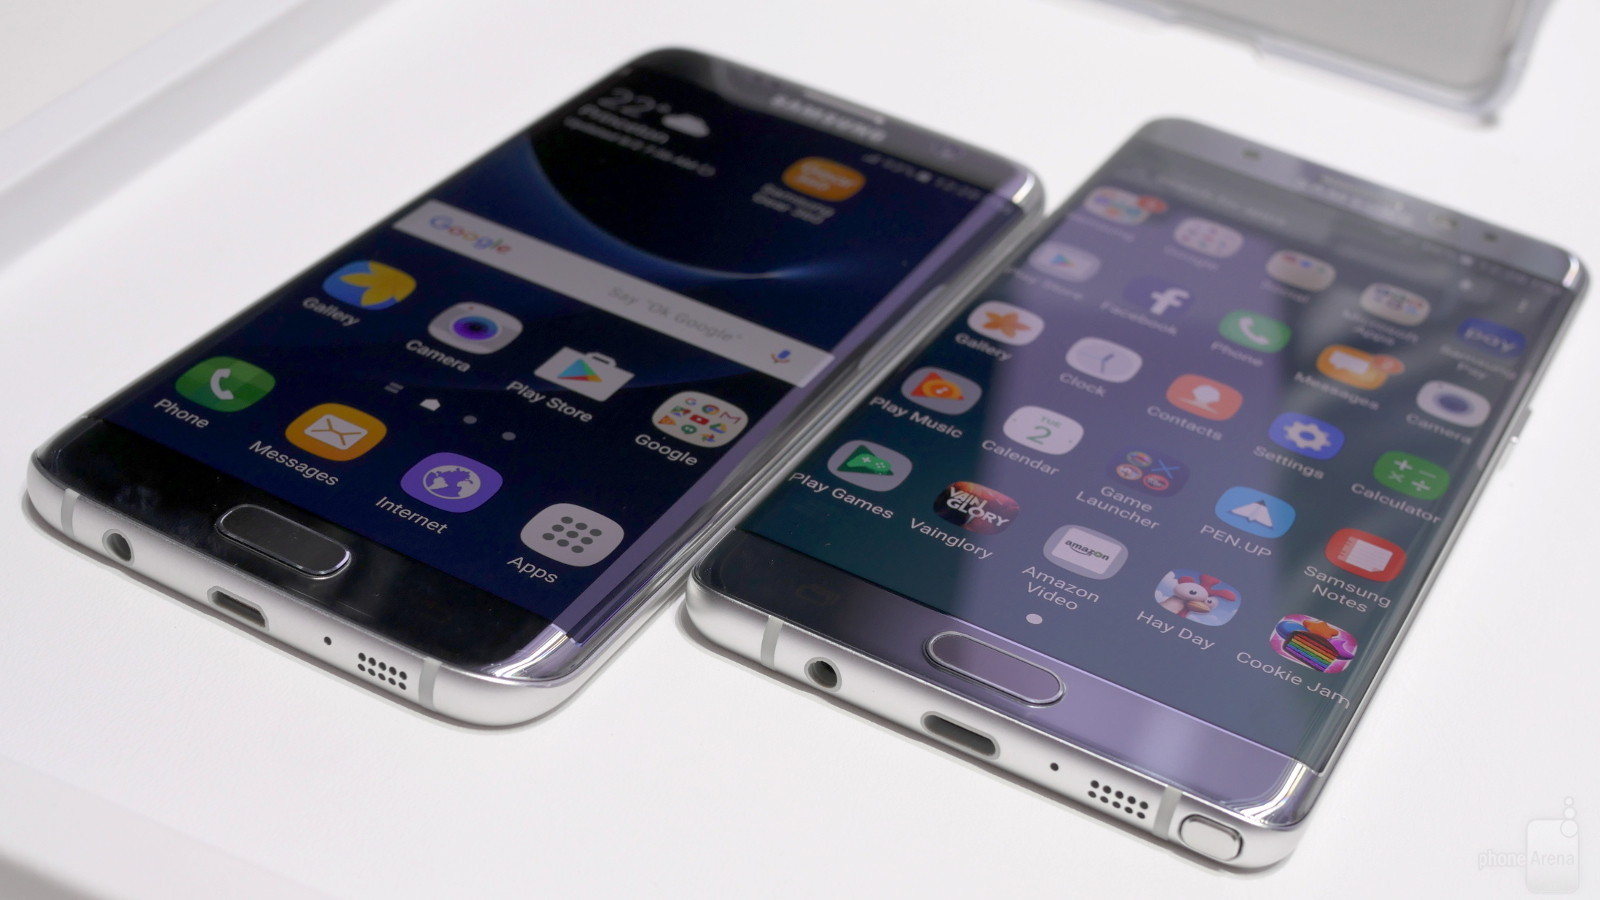 Galaxy-Note-7-vs-S7-edge-bn.JPG